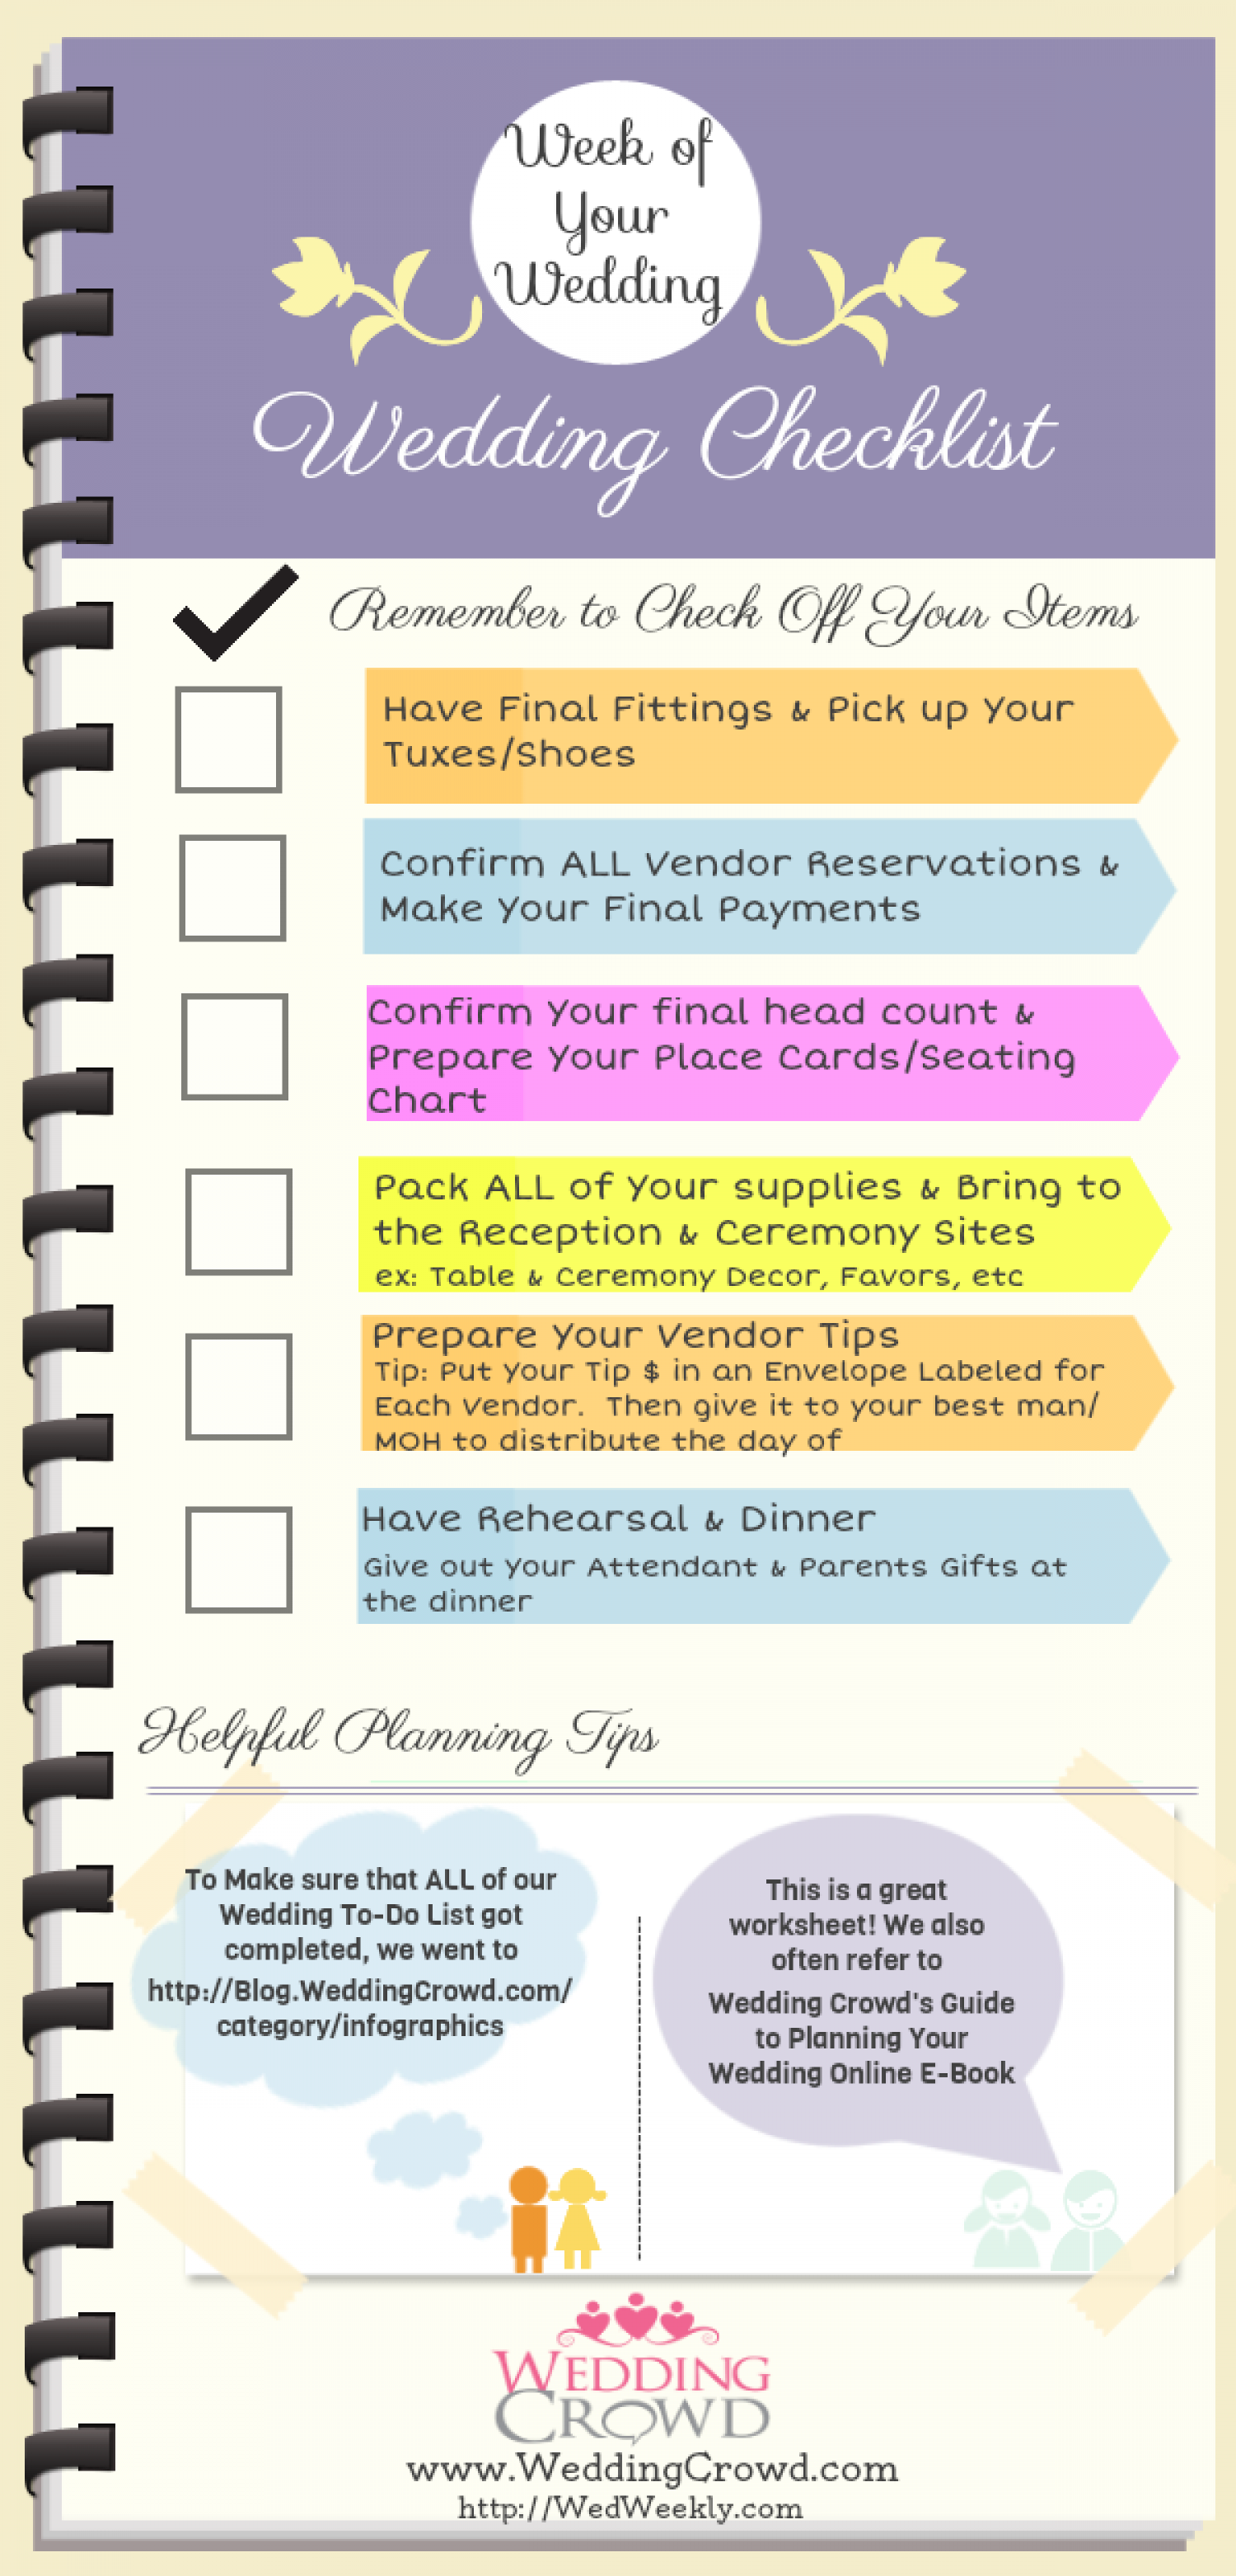 Week of Your Wedding Planning Checklist Infographic